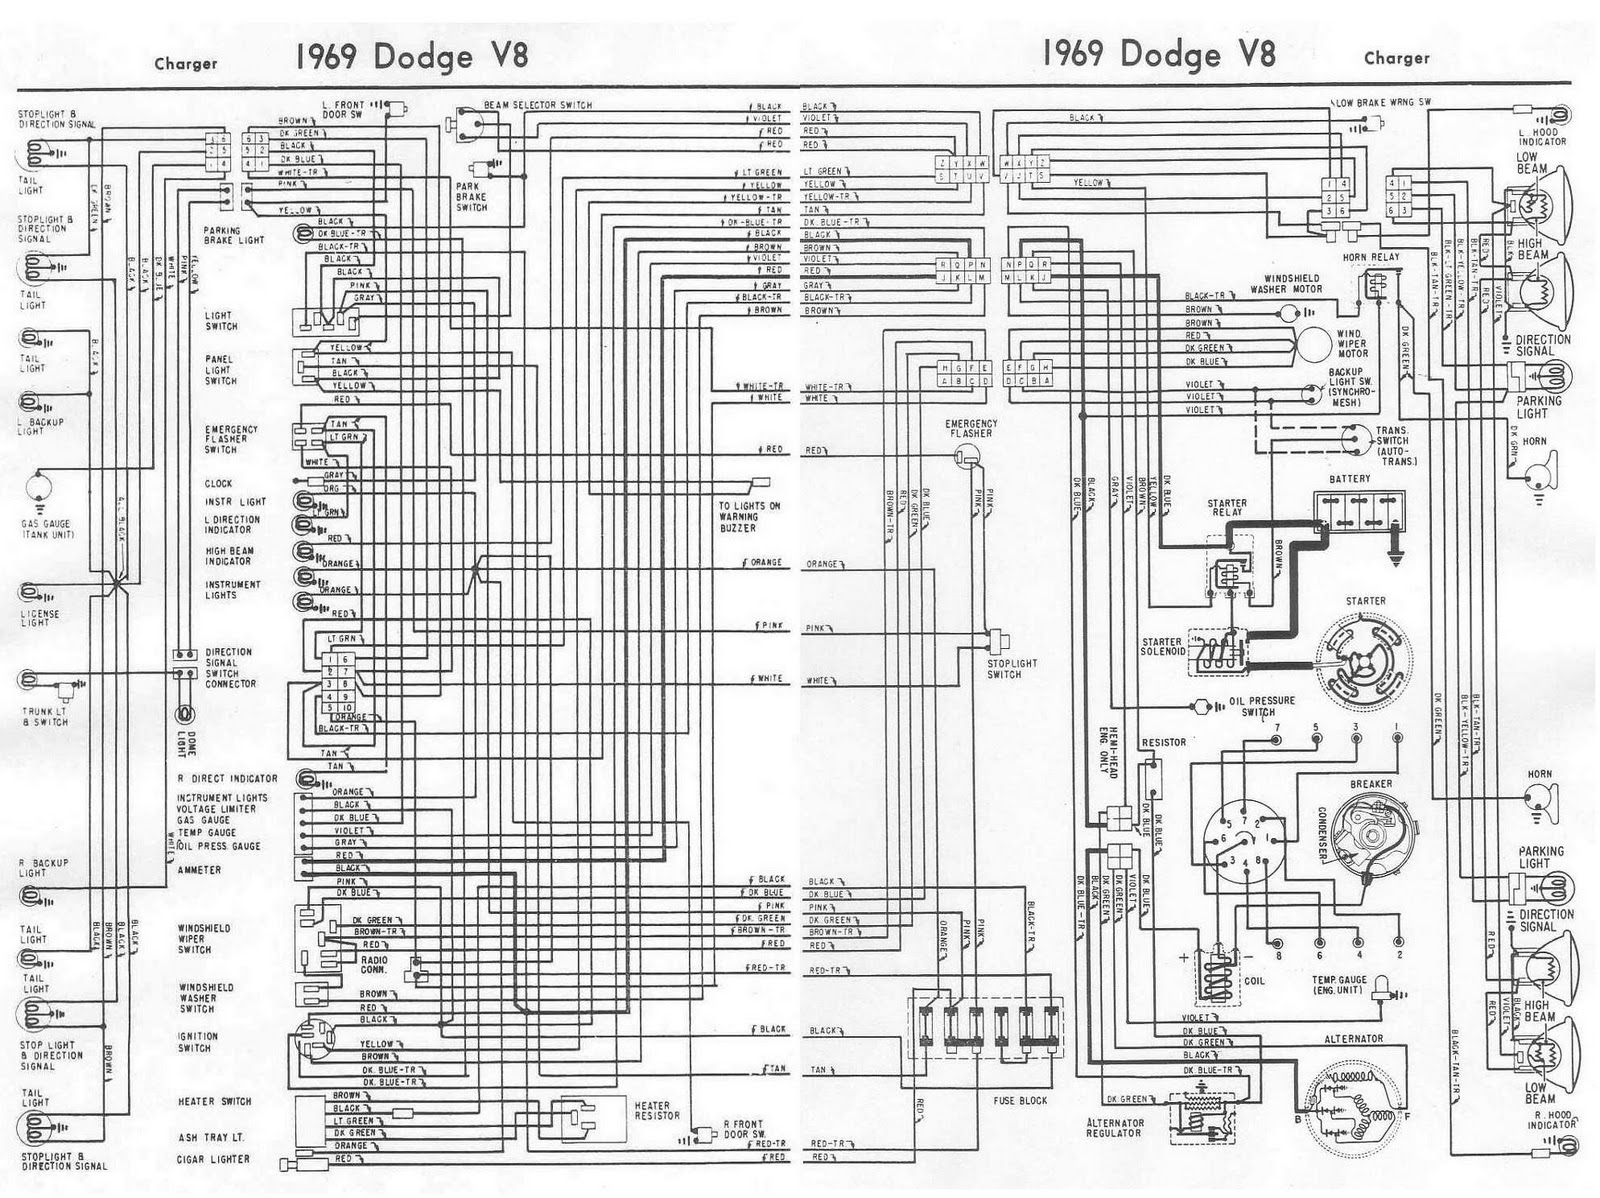 2012 dodge charger wiring diagram dodge charger 1969 v8 complete electrical wiring diagram ... dodge charger starter diagram #14